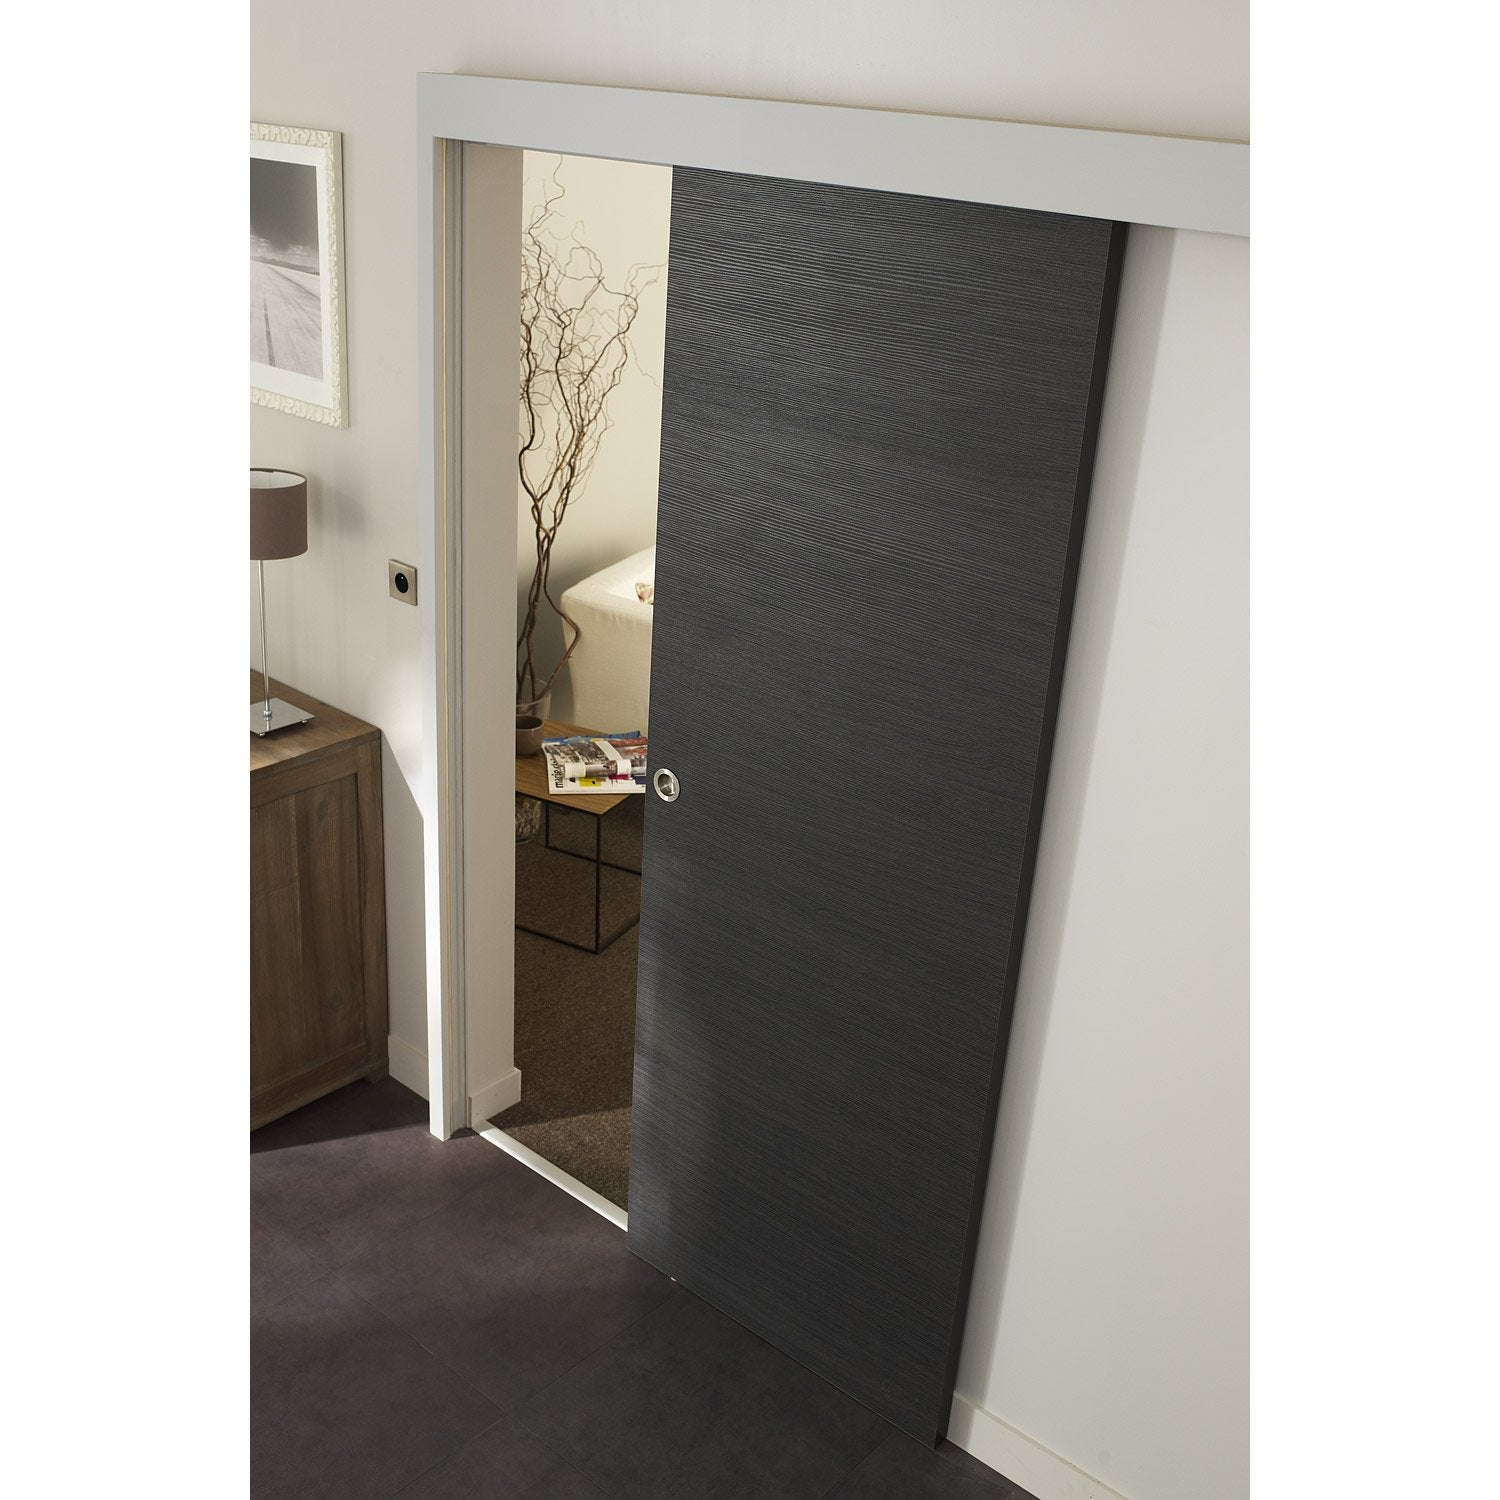 Ensemble porte coulissante londres mdf rev tu avec le rail for Porte coulissante leroy merlin sur mesure